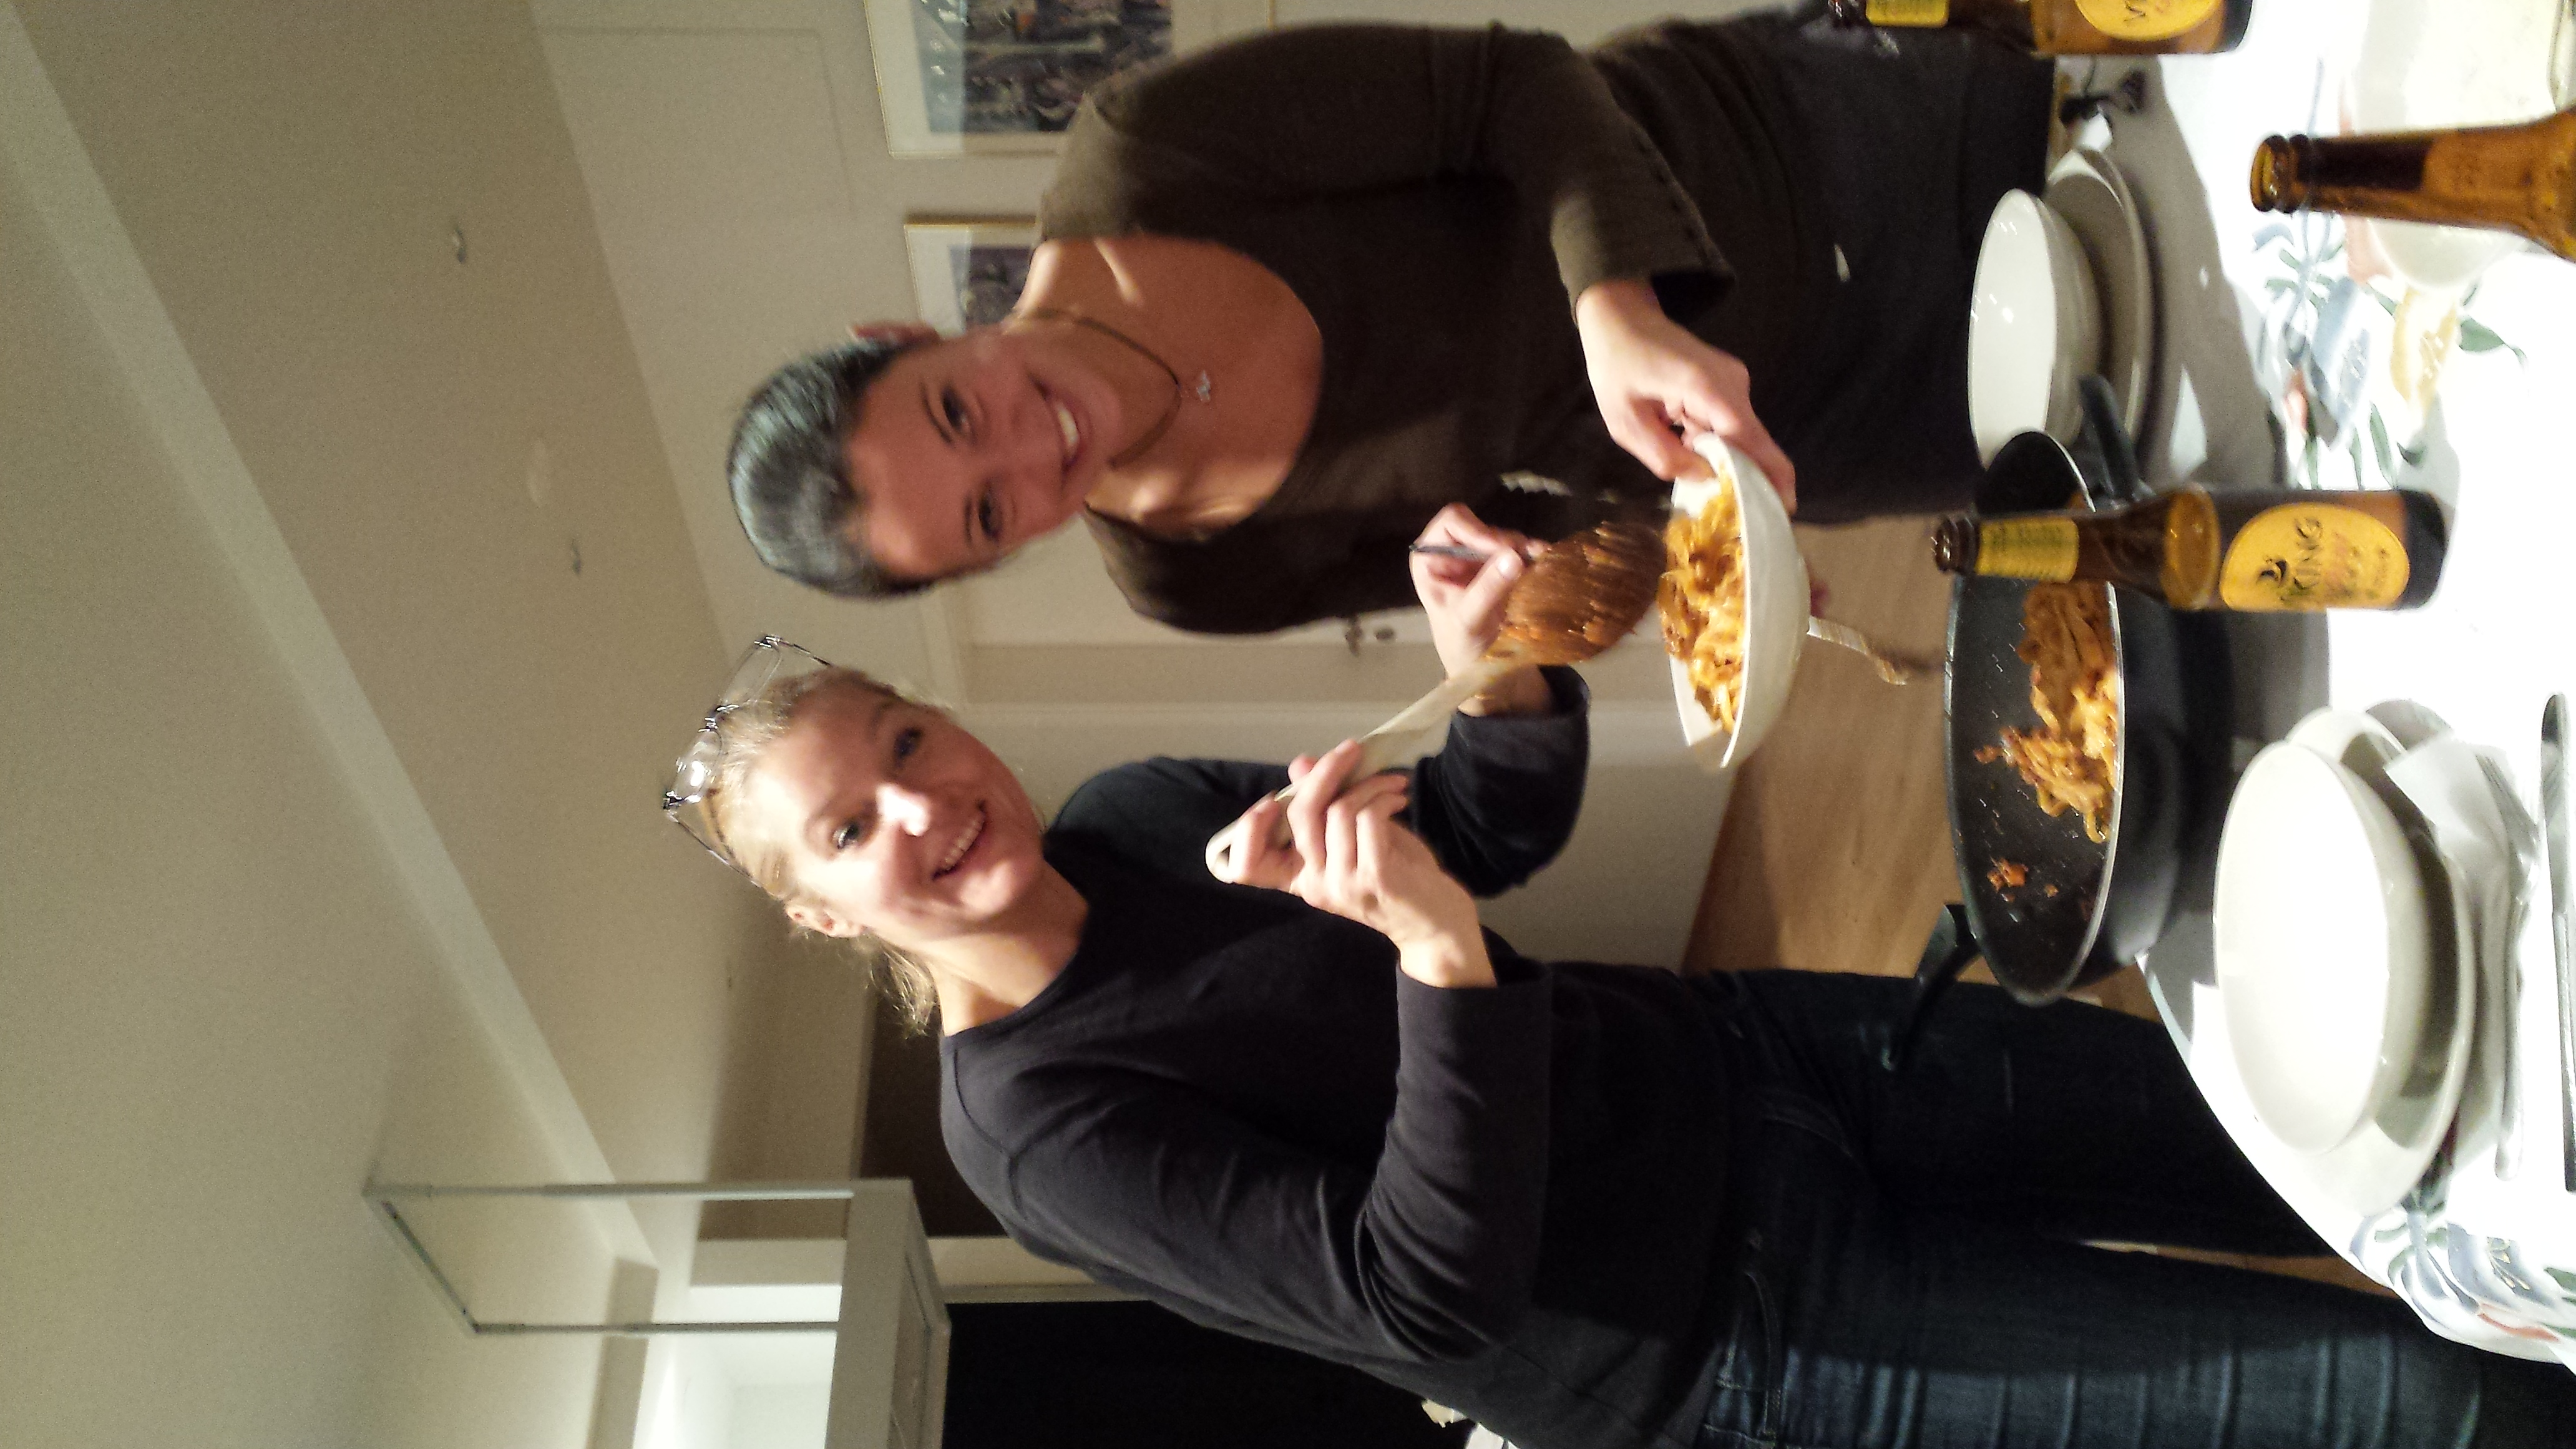 cristiana and giulia serve up an italian feast one of our last nights in iceland.